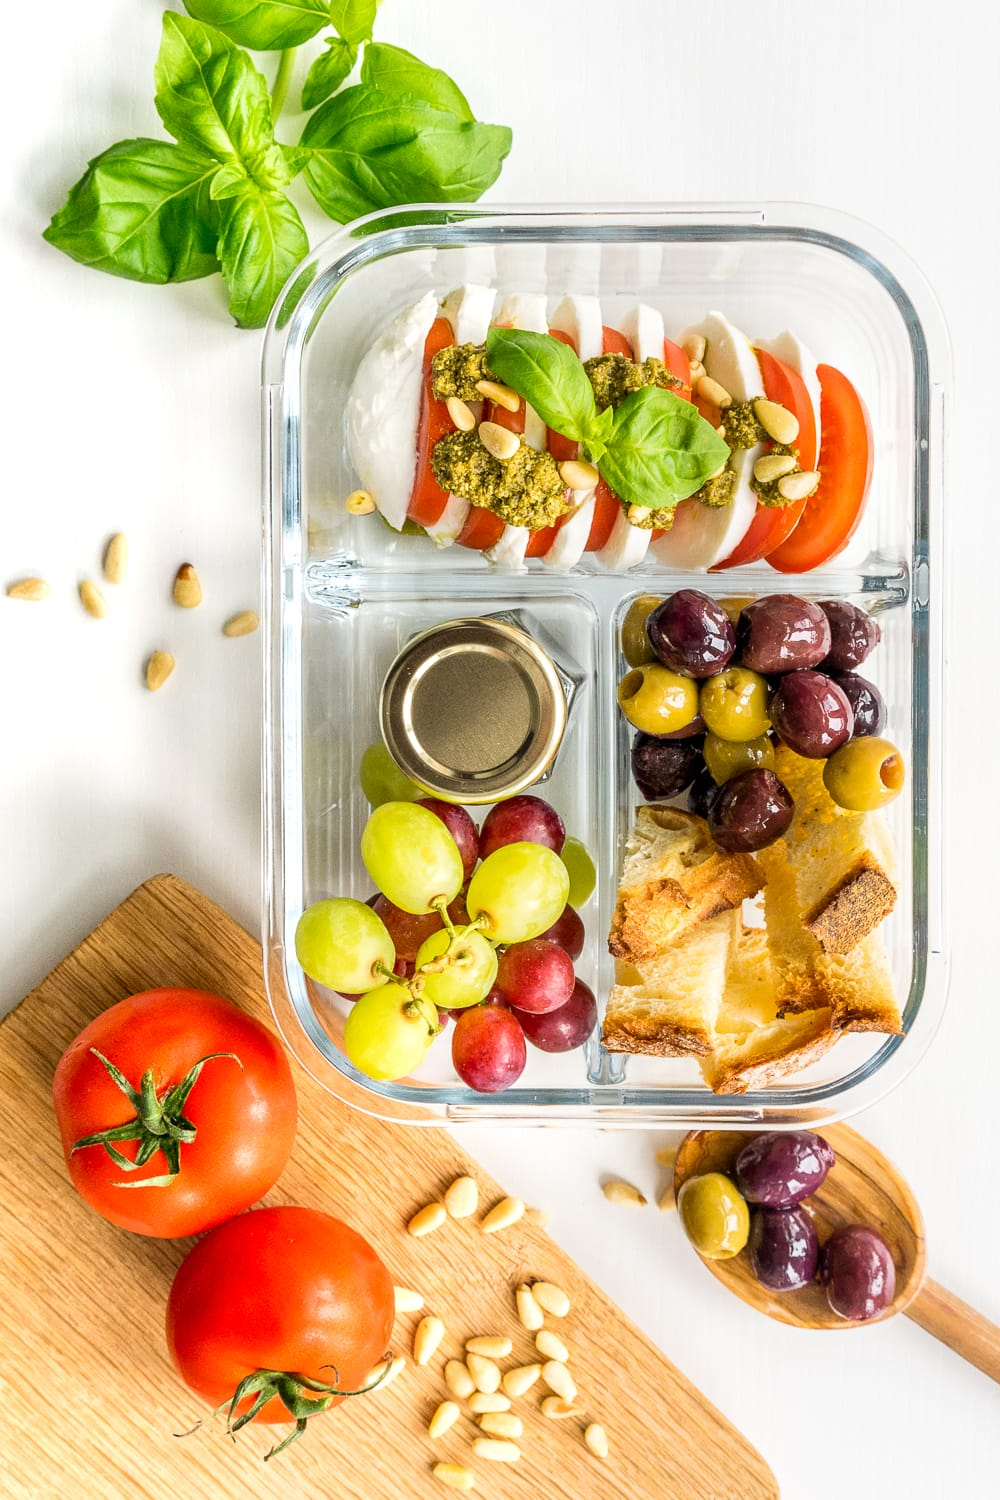 Italian Lunch box idea: Who says bringing lunch from home needs to be boring? This awesome lunch box for adults is perfect for work and are ready in less than 30 minutes!